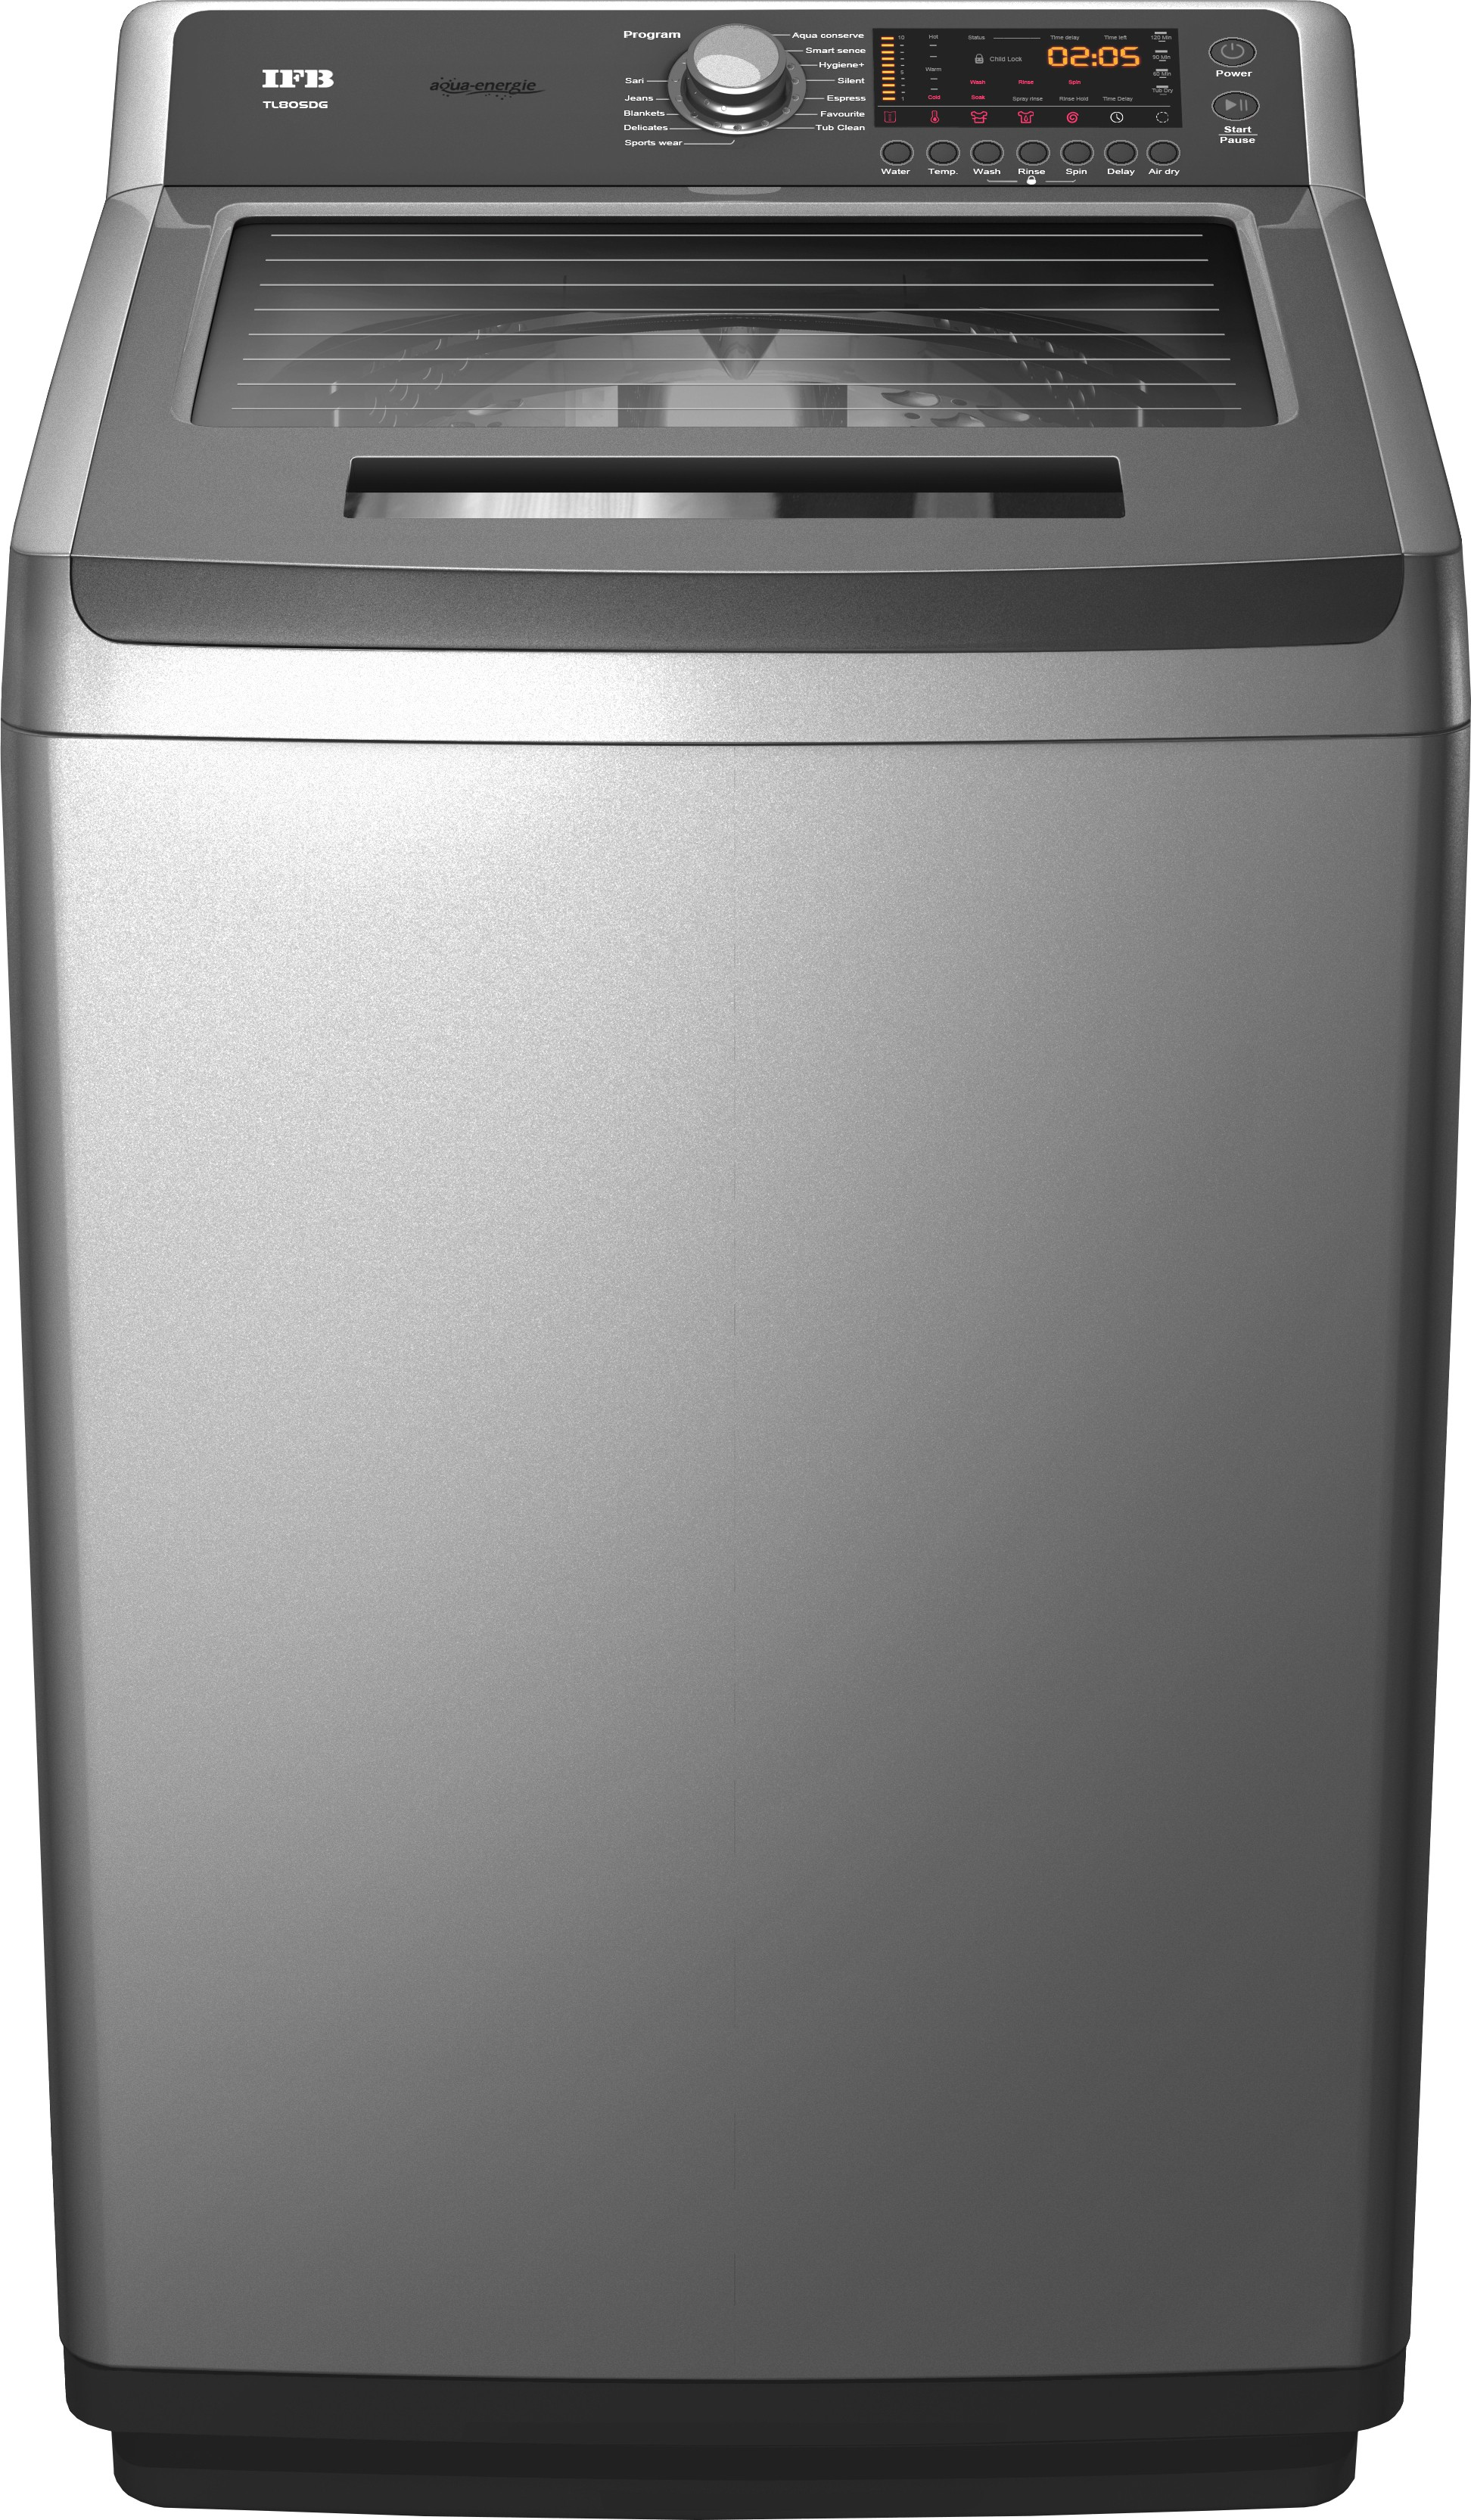 IFB TL 80SDG AQUA 8.0KG Fully Automatic Top Load Washing Machine